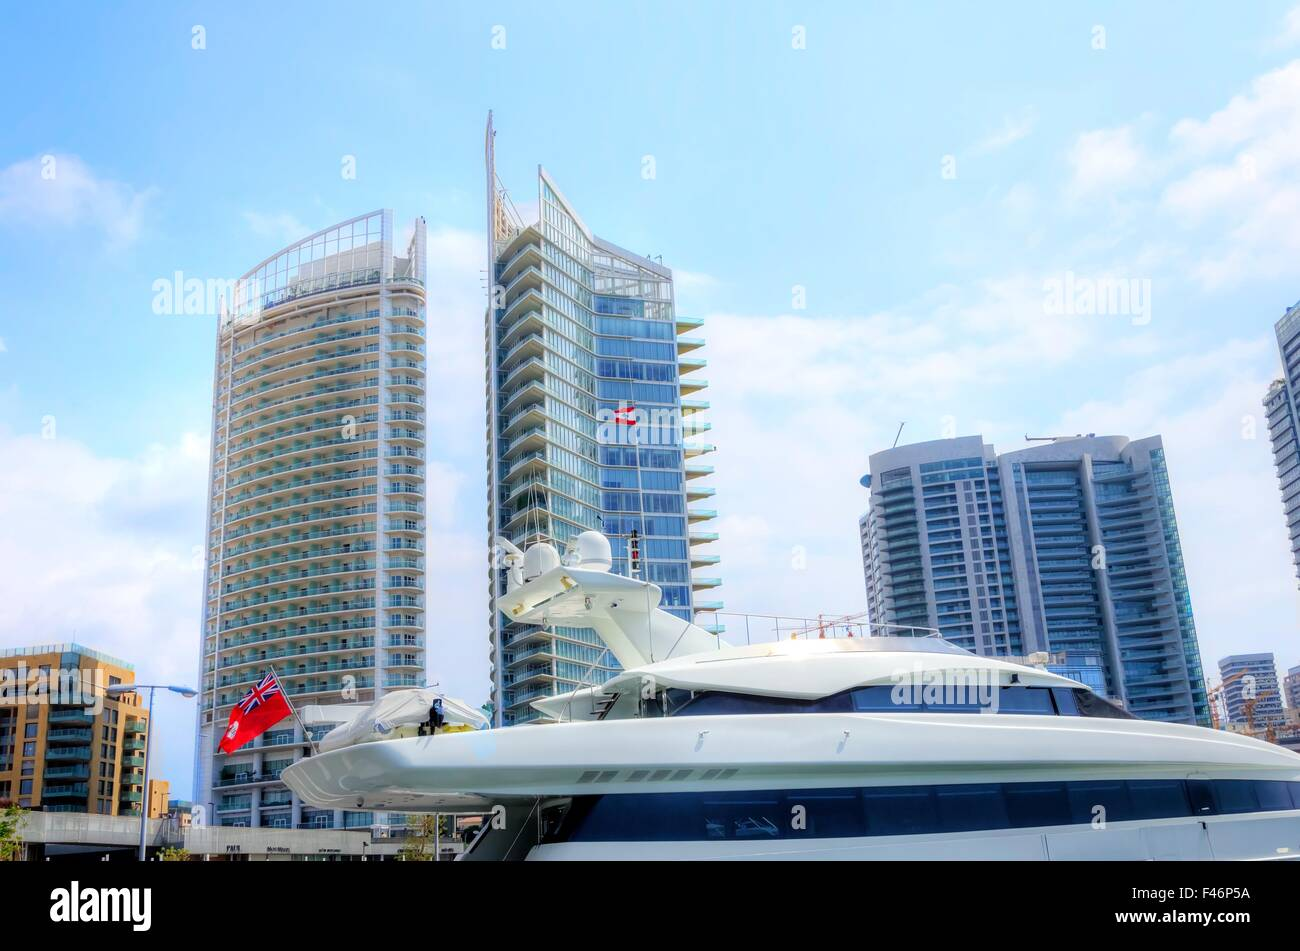 A view of a yacht and towers at the beautiful Marina in Zaitunay Bay in Beirut, Lebanon. A very modern, high end - Stock Image